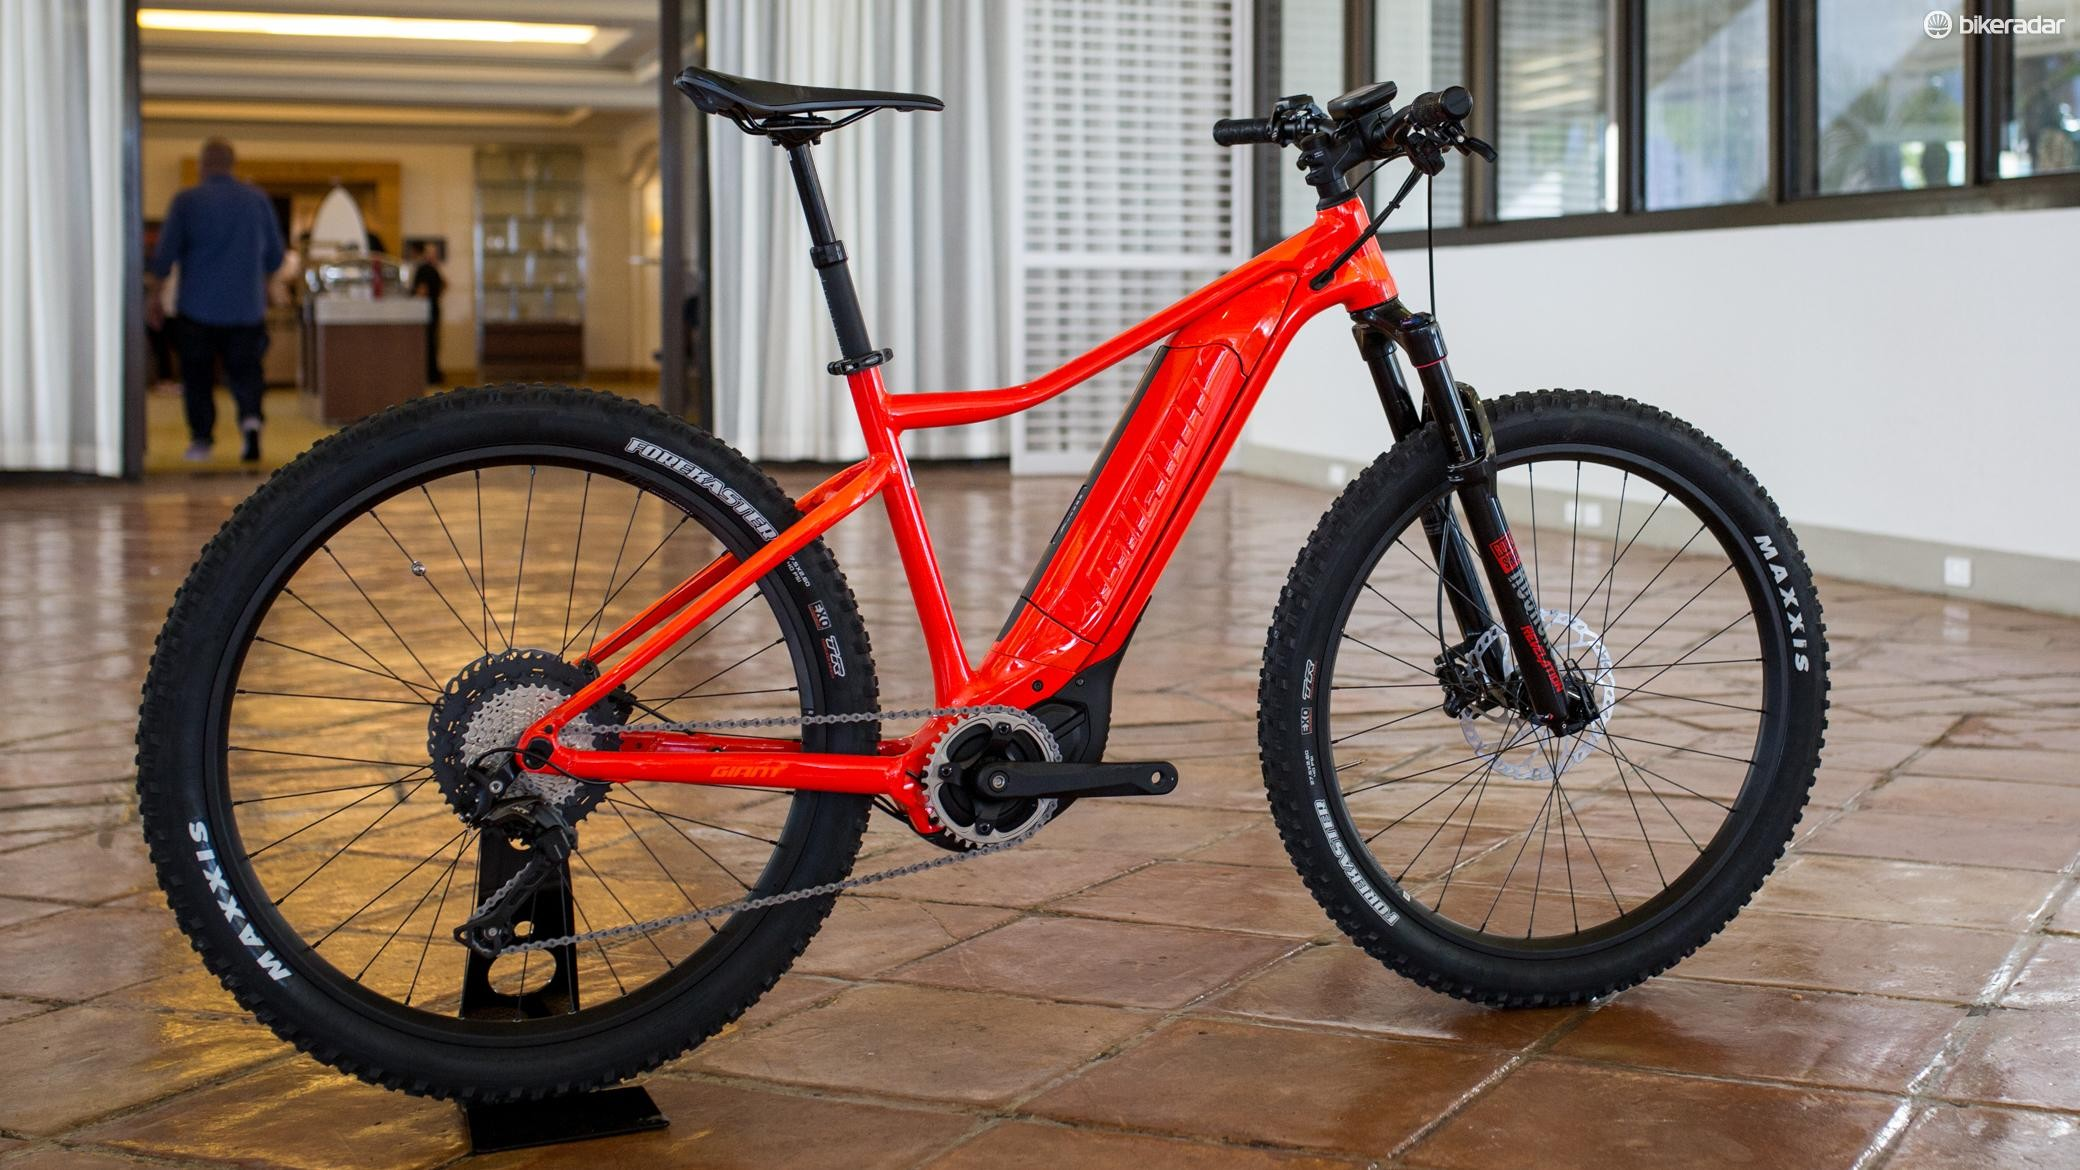 Giant's new 27.5+ e-MTB is the Dirt E+ 100Pro